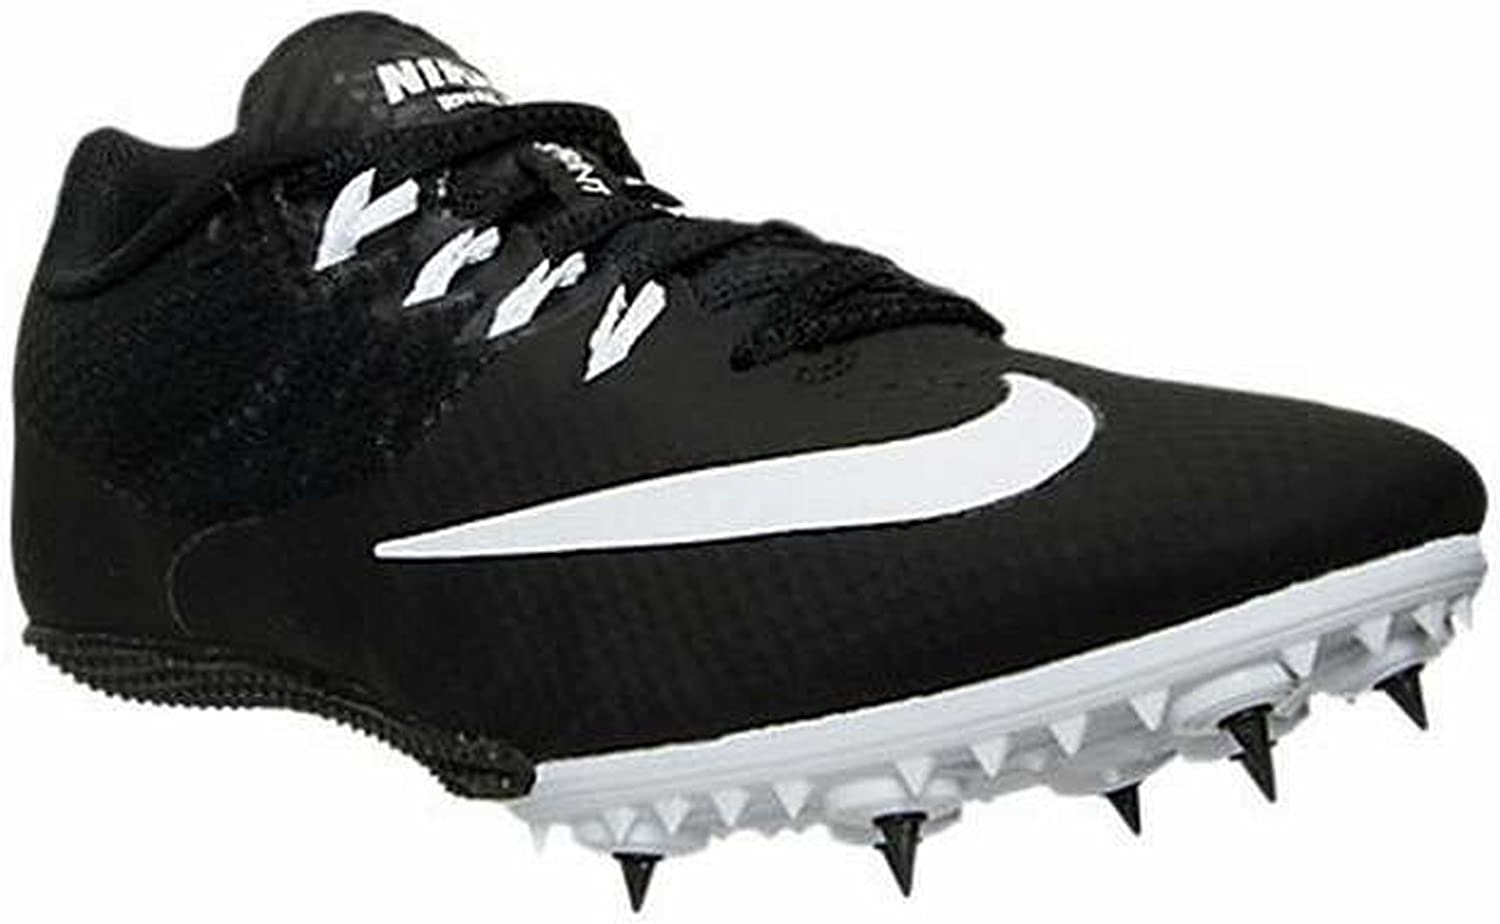 Nike Men's Zoom Rival S 8 Track Spike